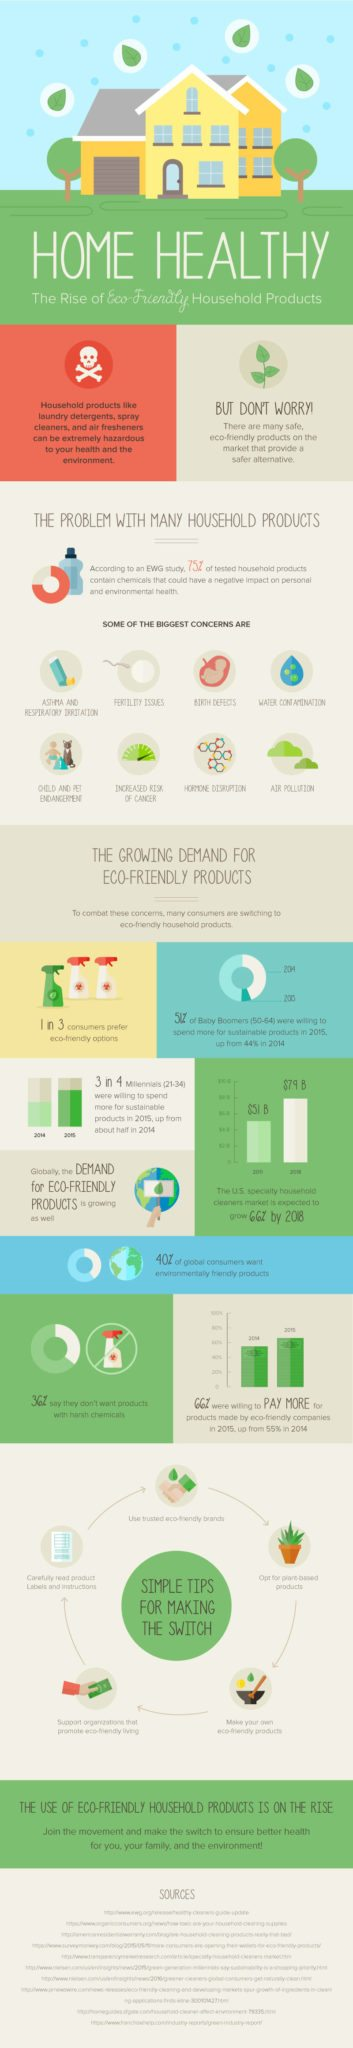 Home Healthy: The Rise of Eco-Friendly Household Products 1